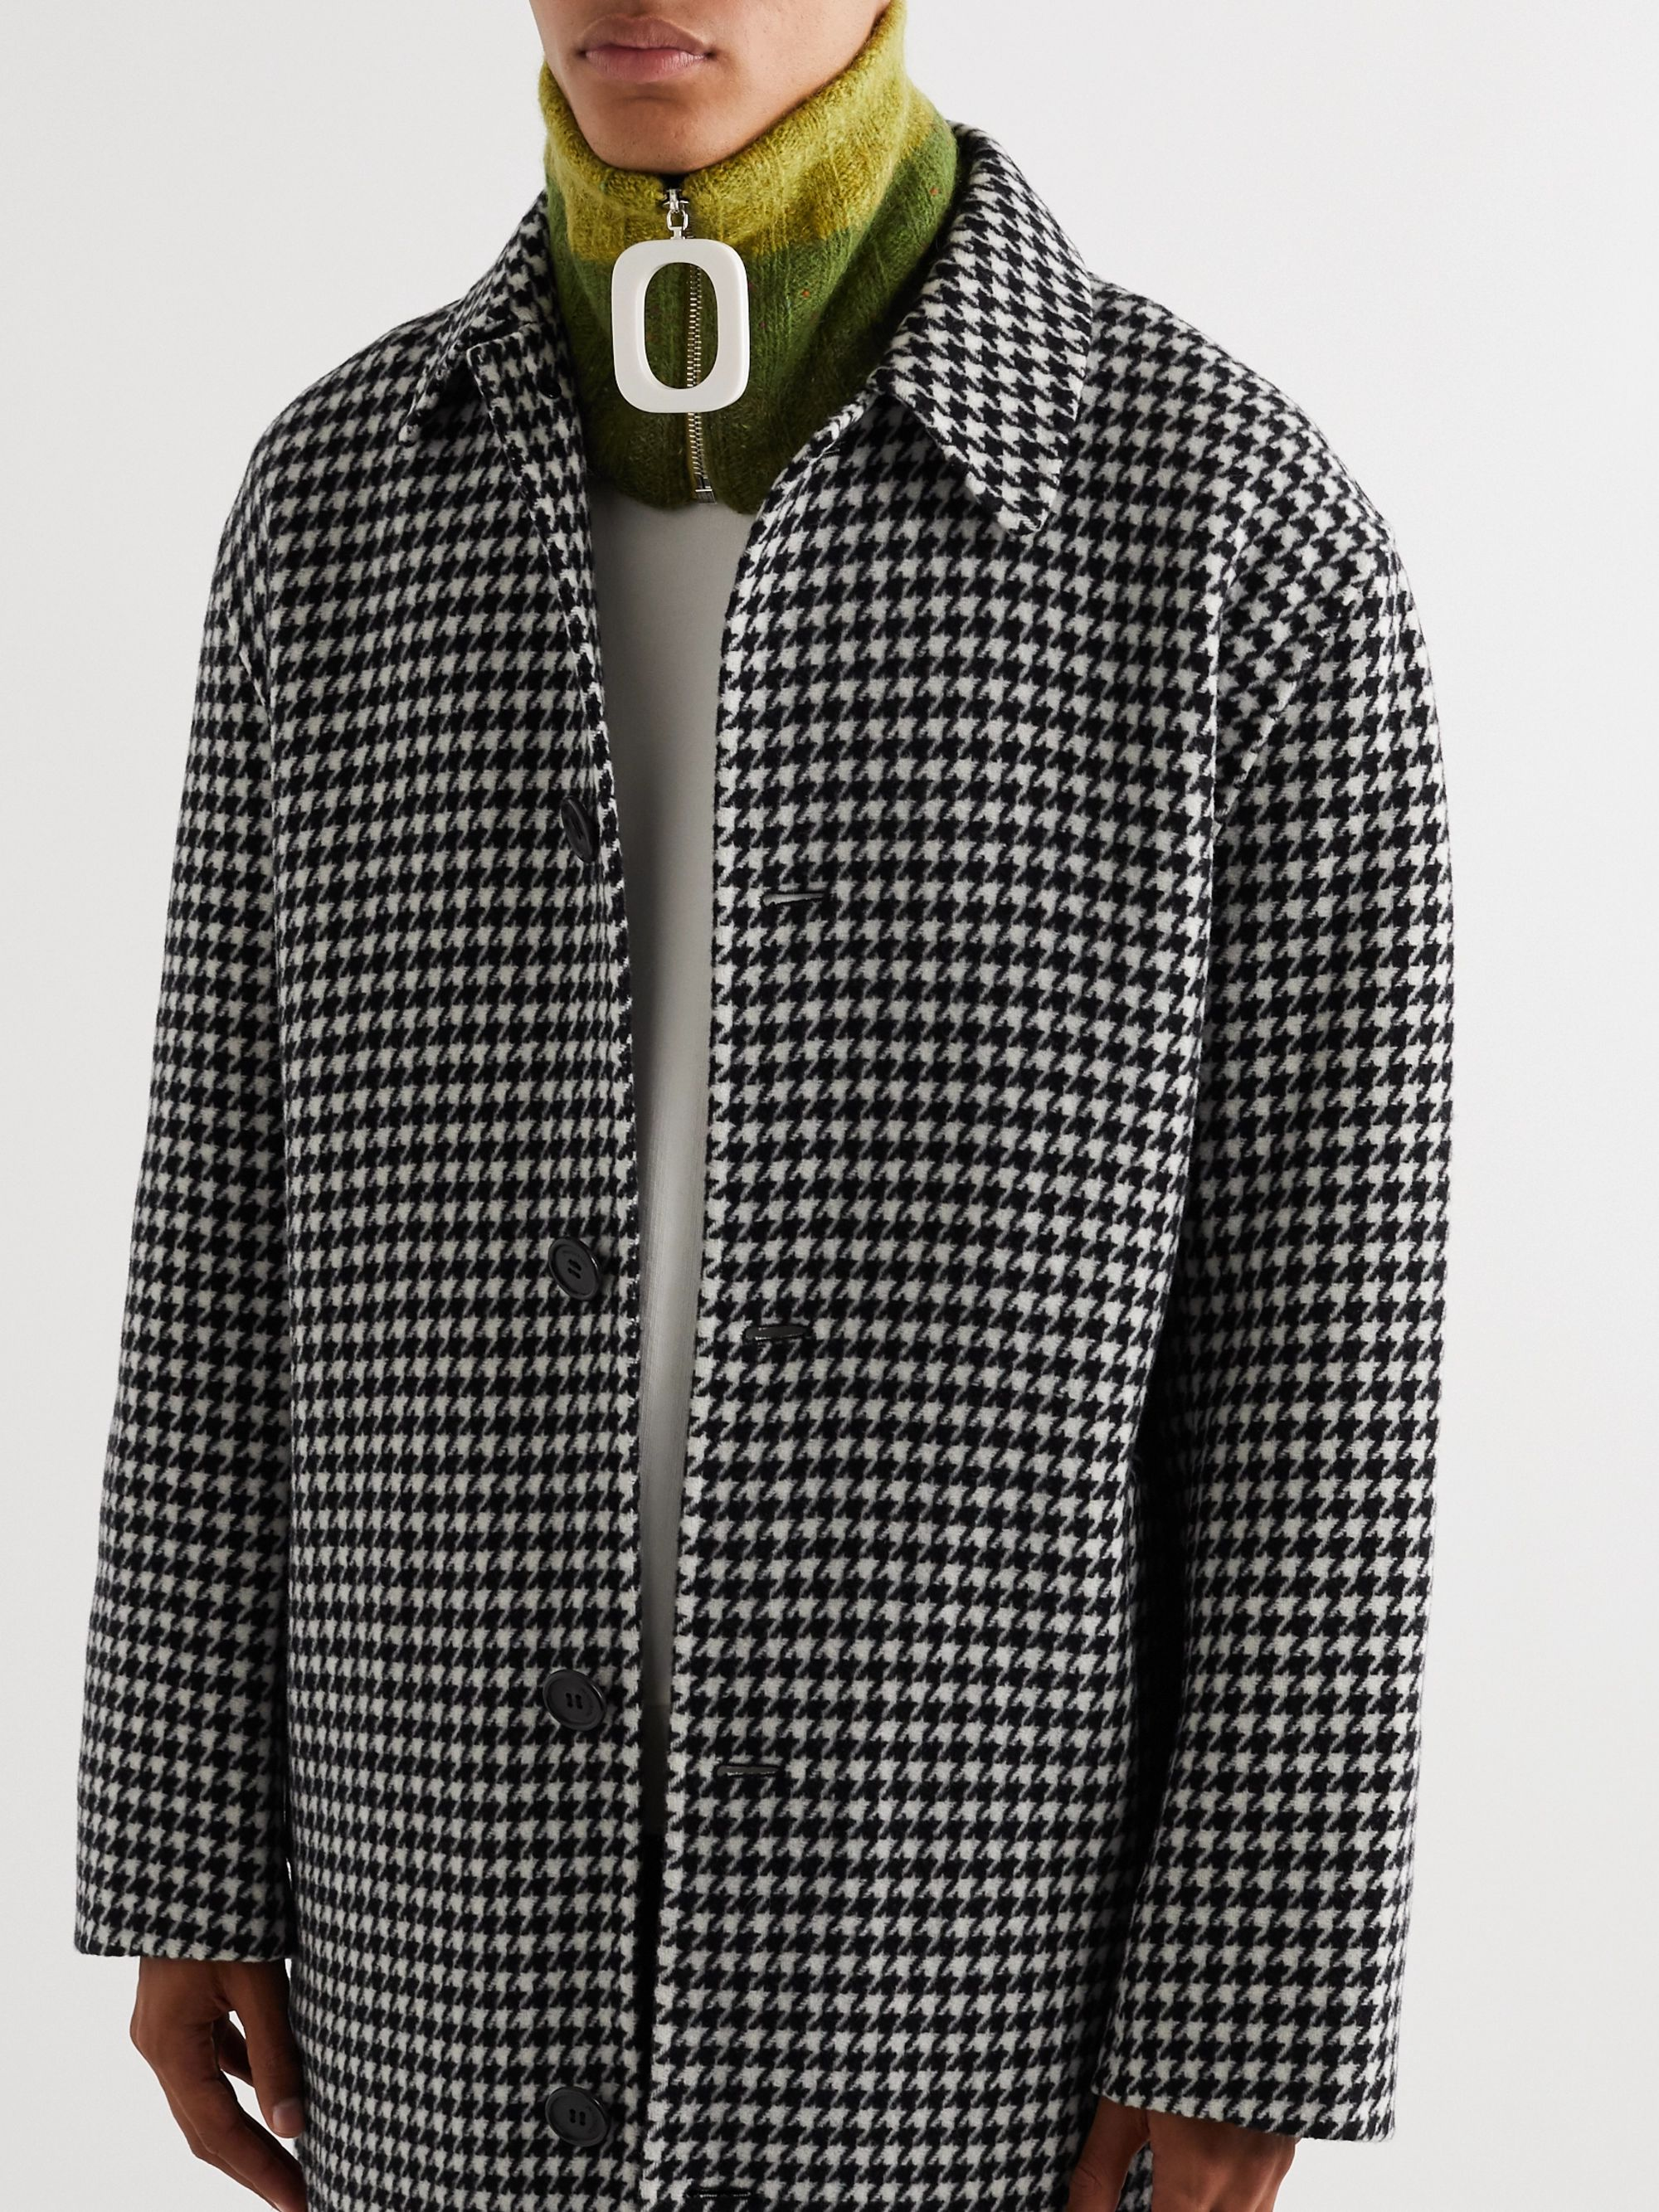 JW Anderson Striped Mélange Wool and Mohair-Blend Zip-Up Snood